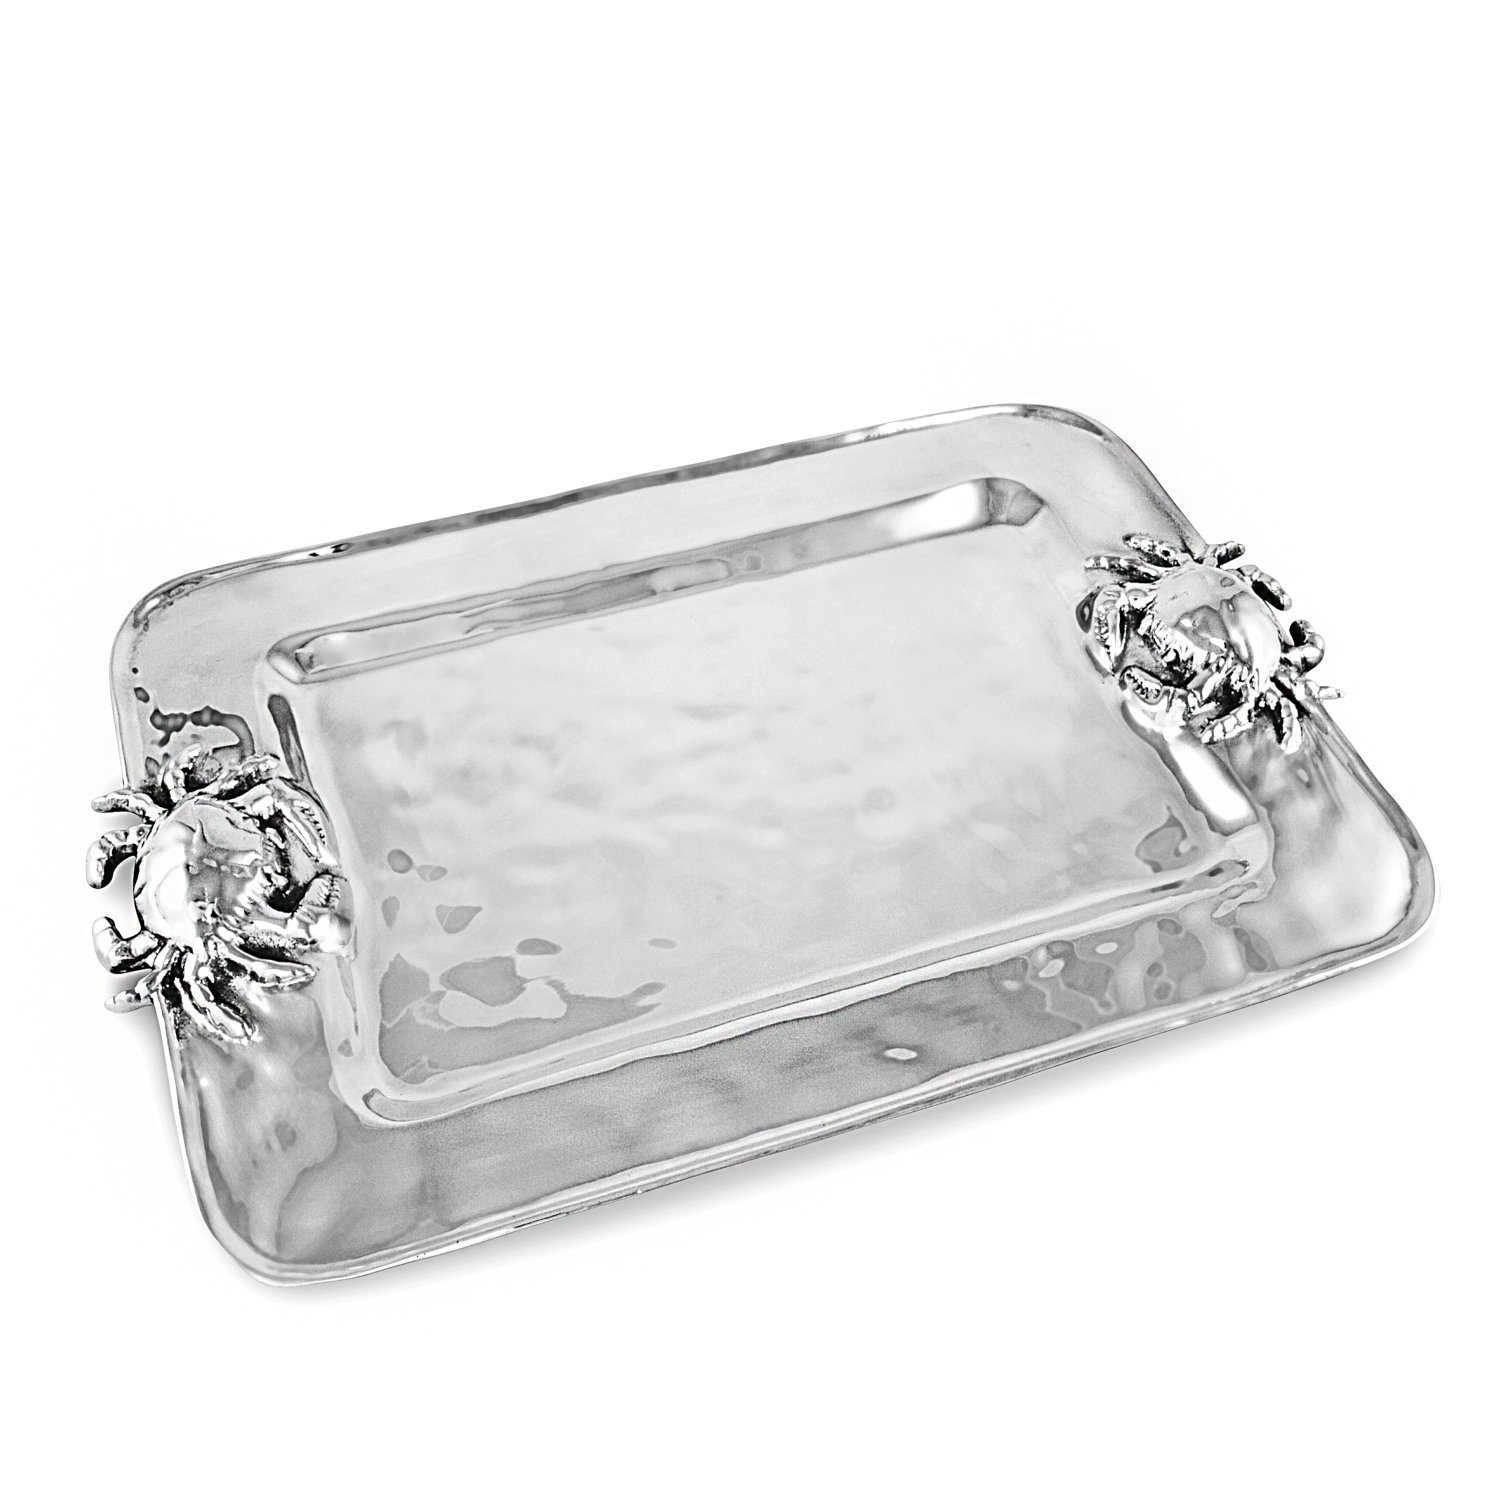 Beatriz Ball_6389 serving platters, Metallic